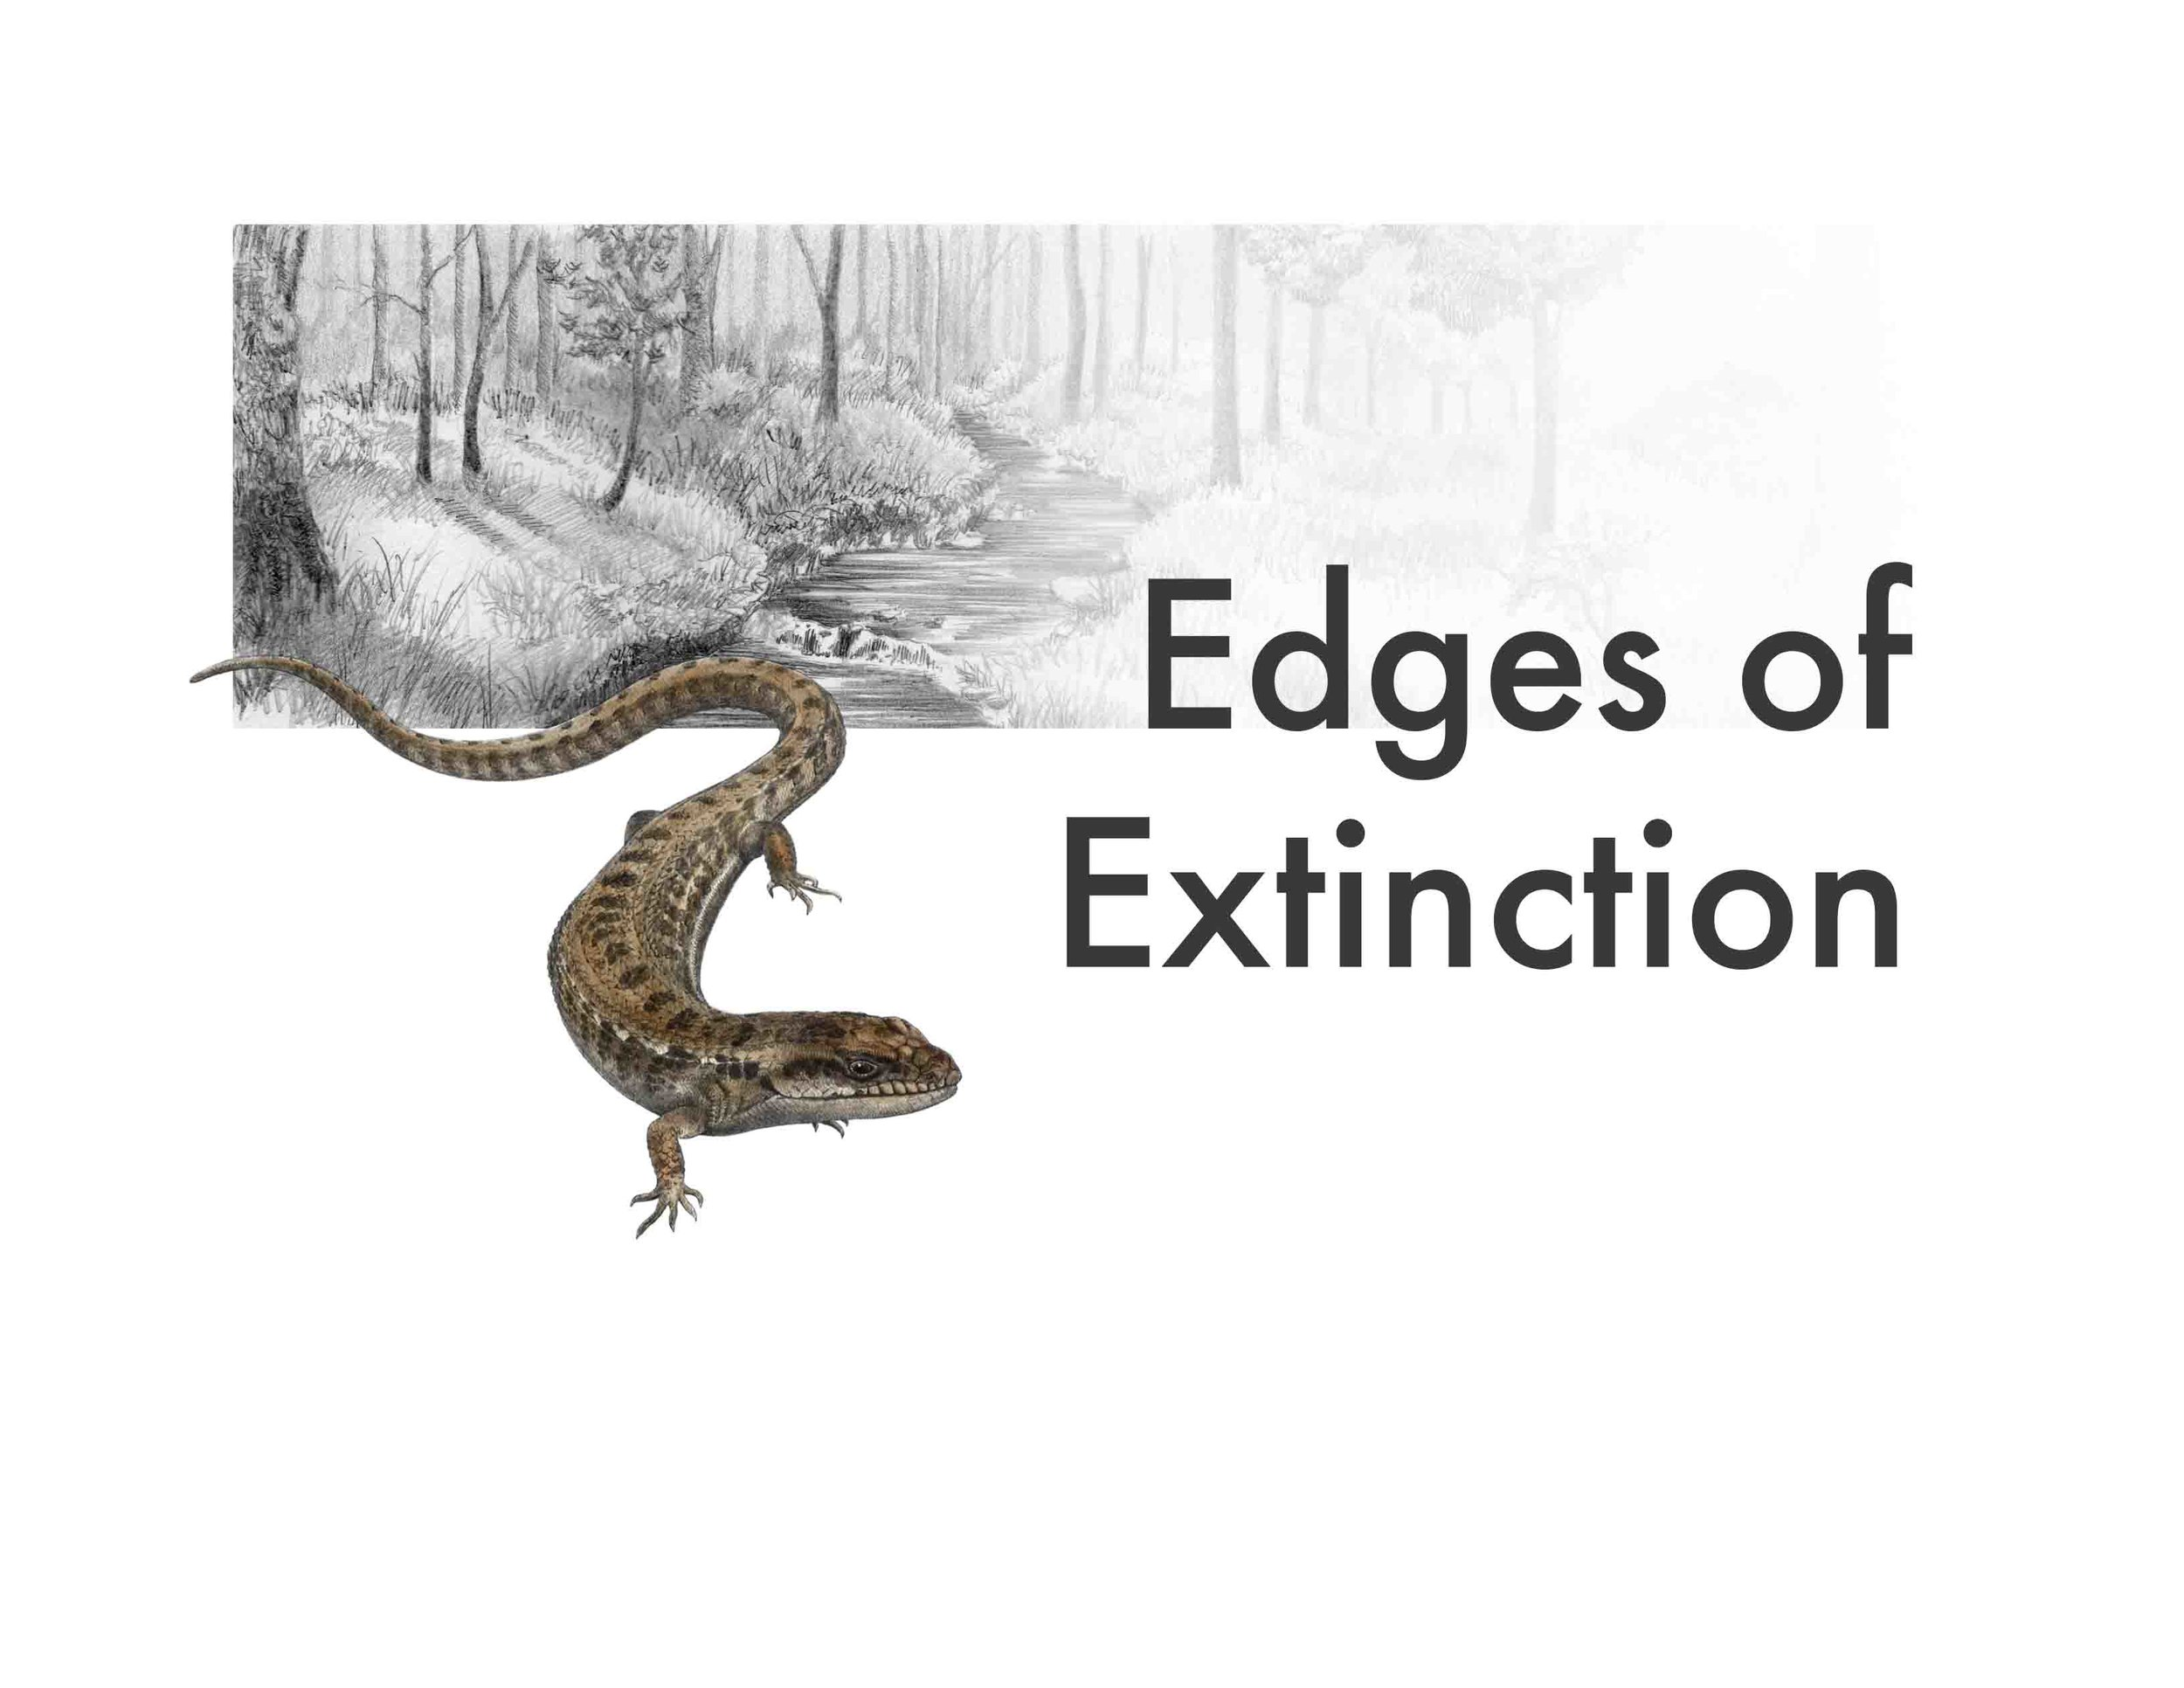 Edges of Extinction